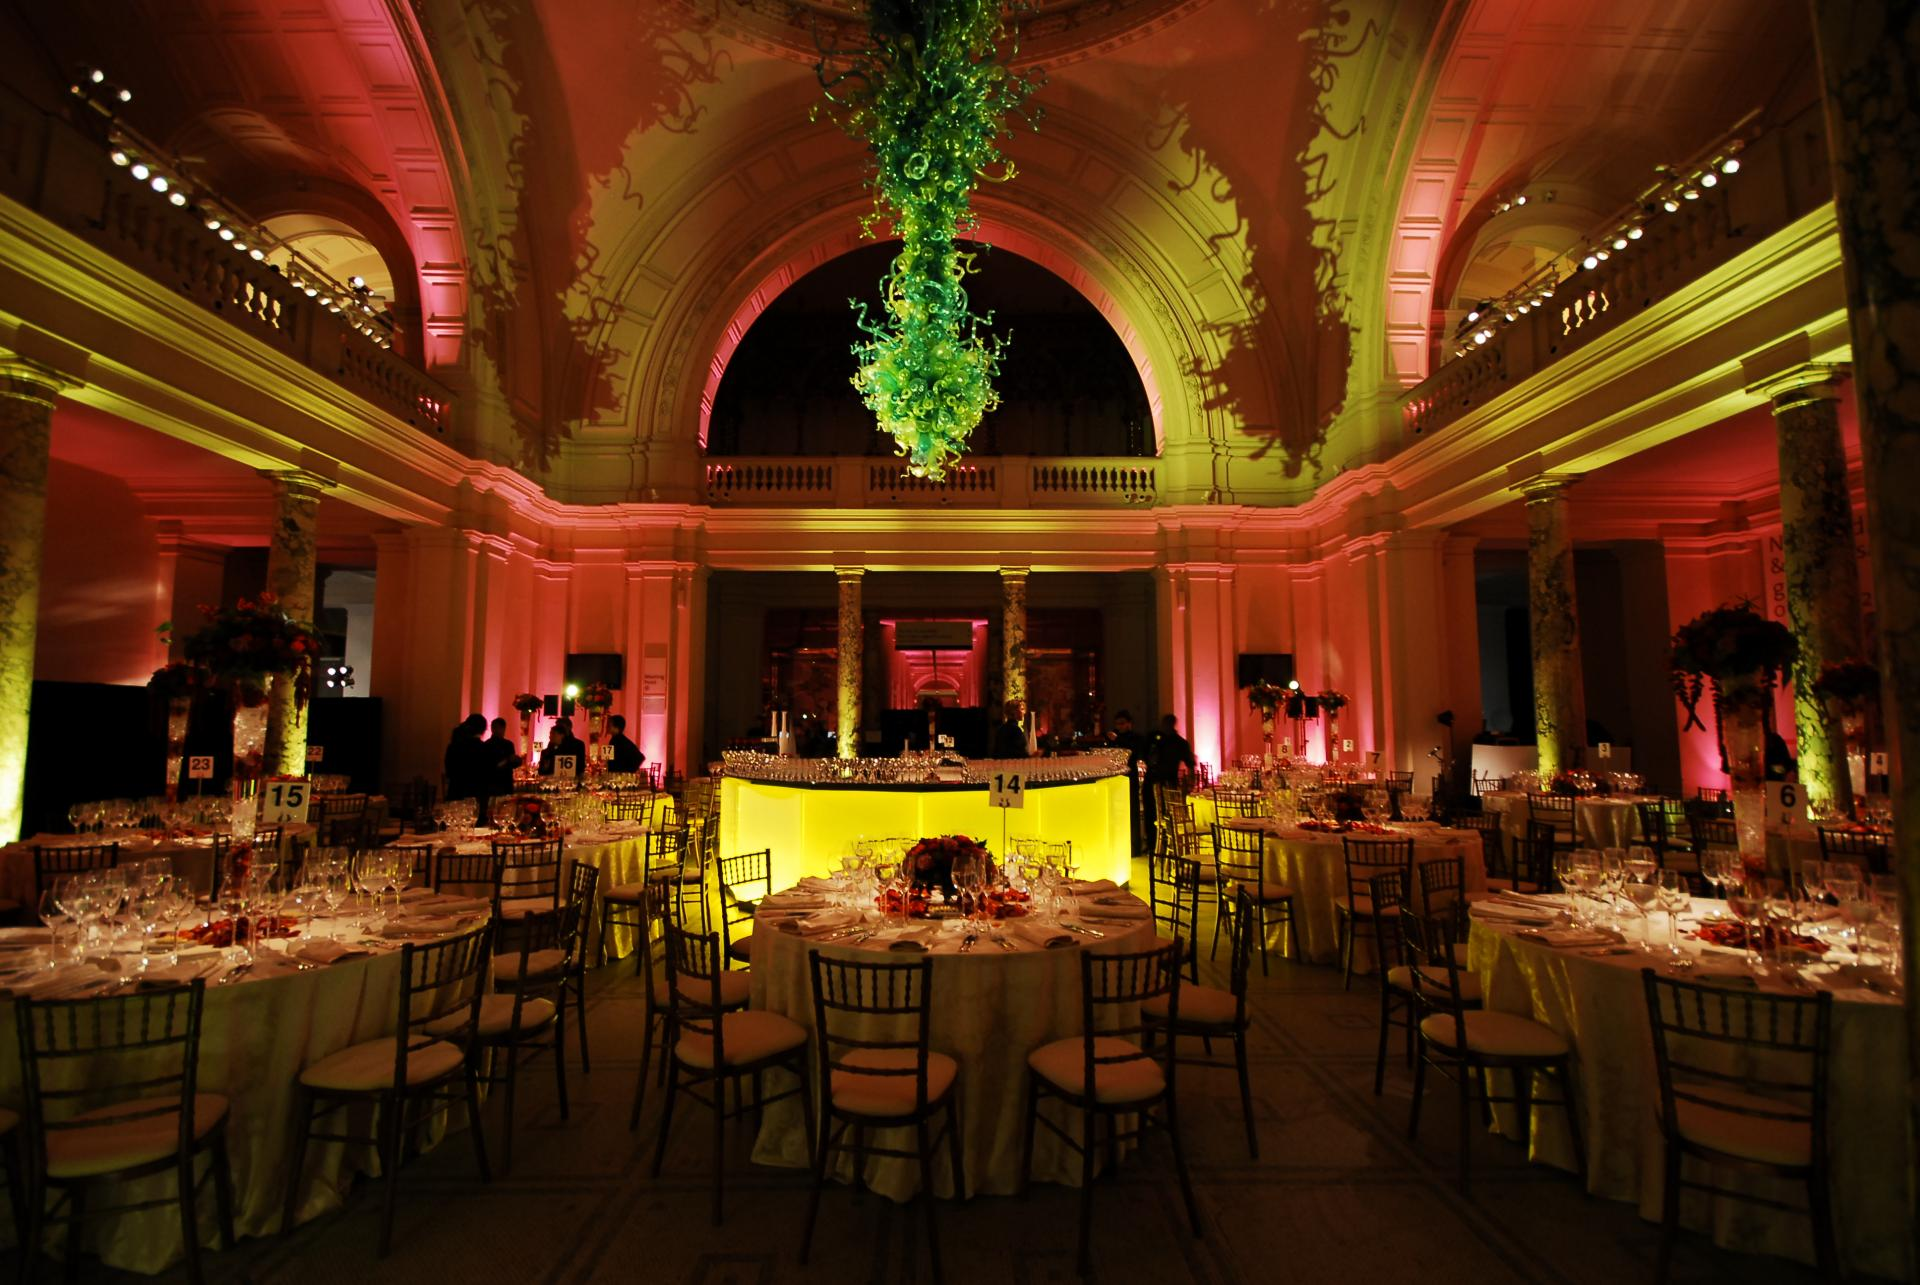 Victoria And Albert Museum Venue Hire London Unique Venues Of London